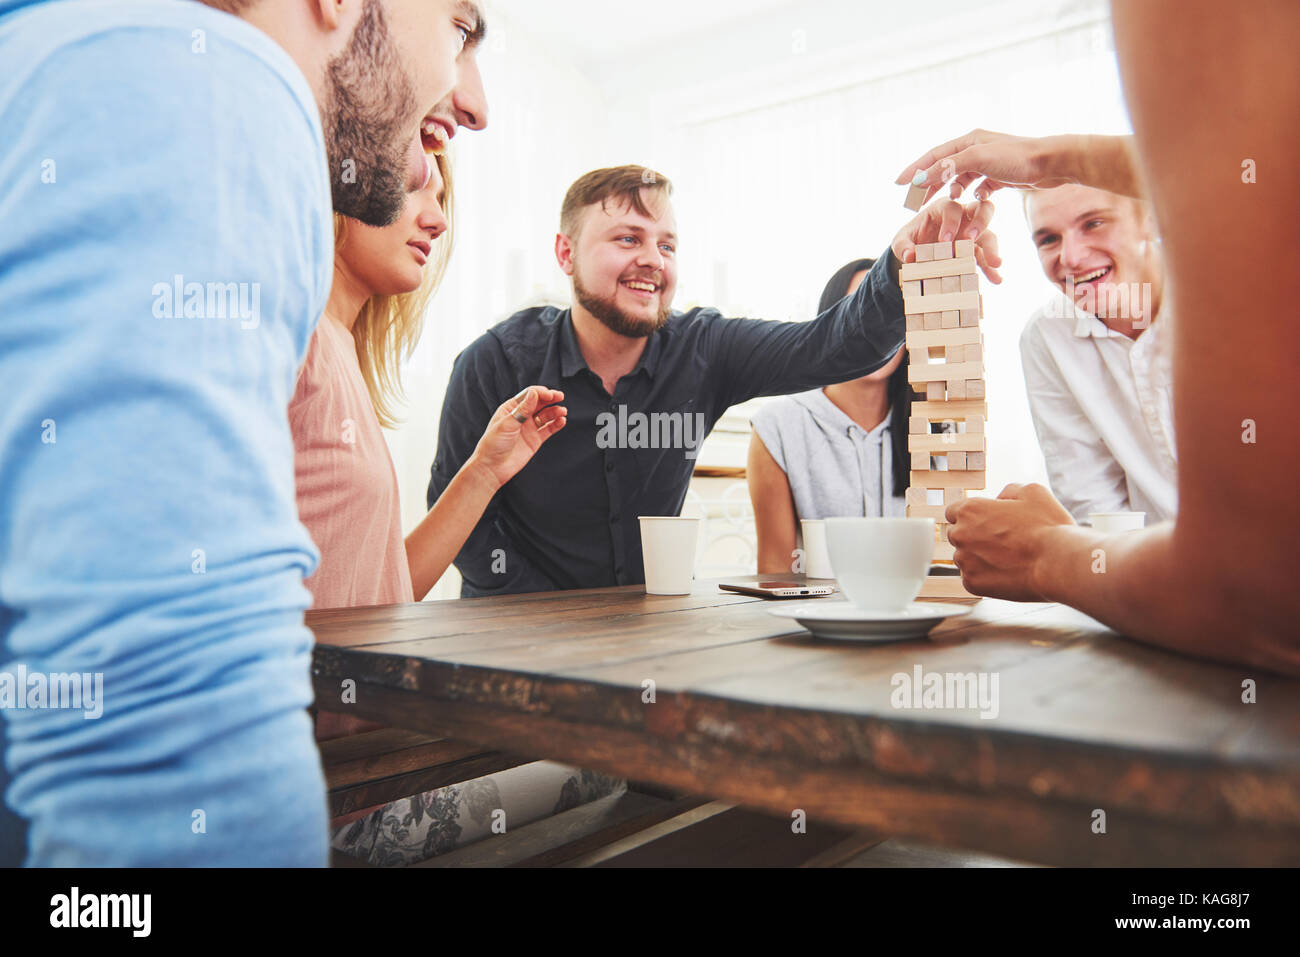 Group of creative friends sitting at wooden table. People having fun while playing board game - Stock Image